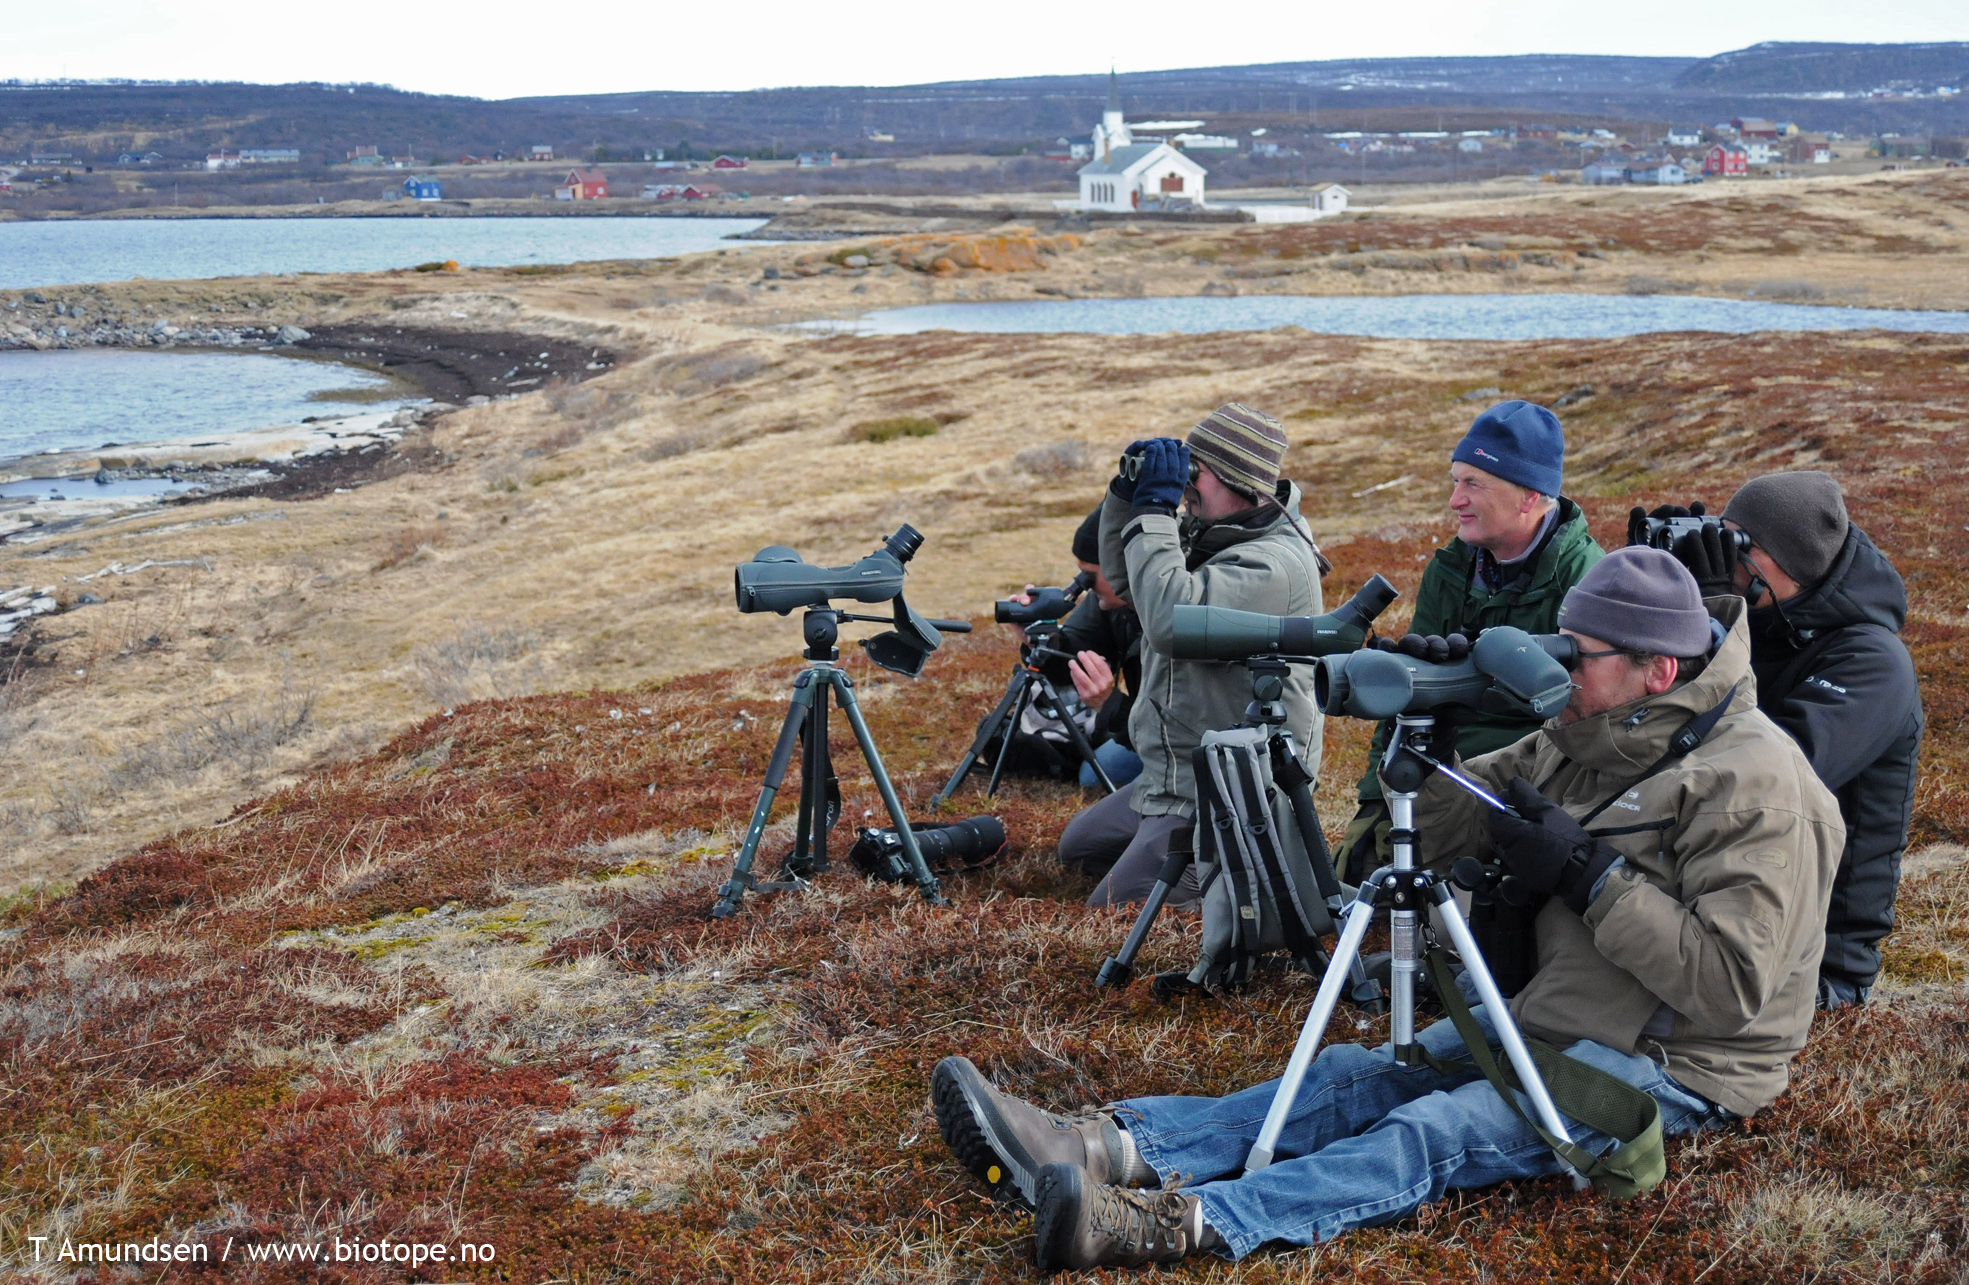 Birders visiting Varanger - the most well known arctic birding destination in the world.